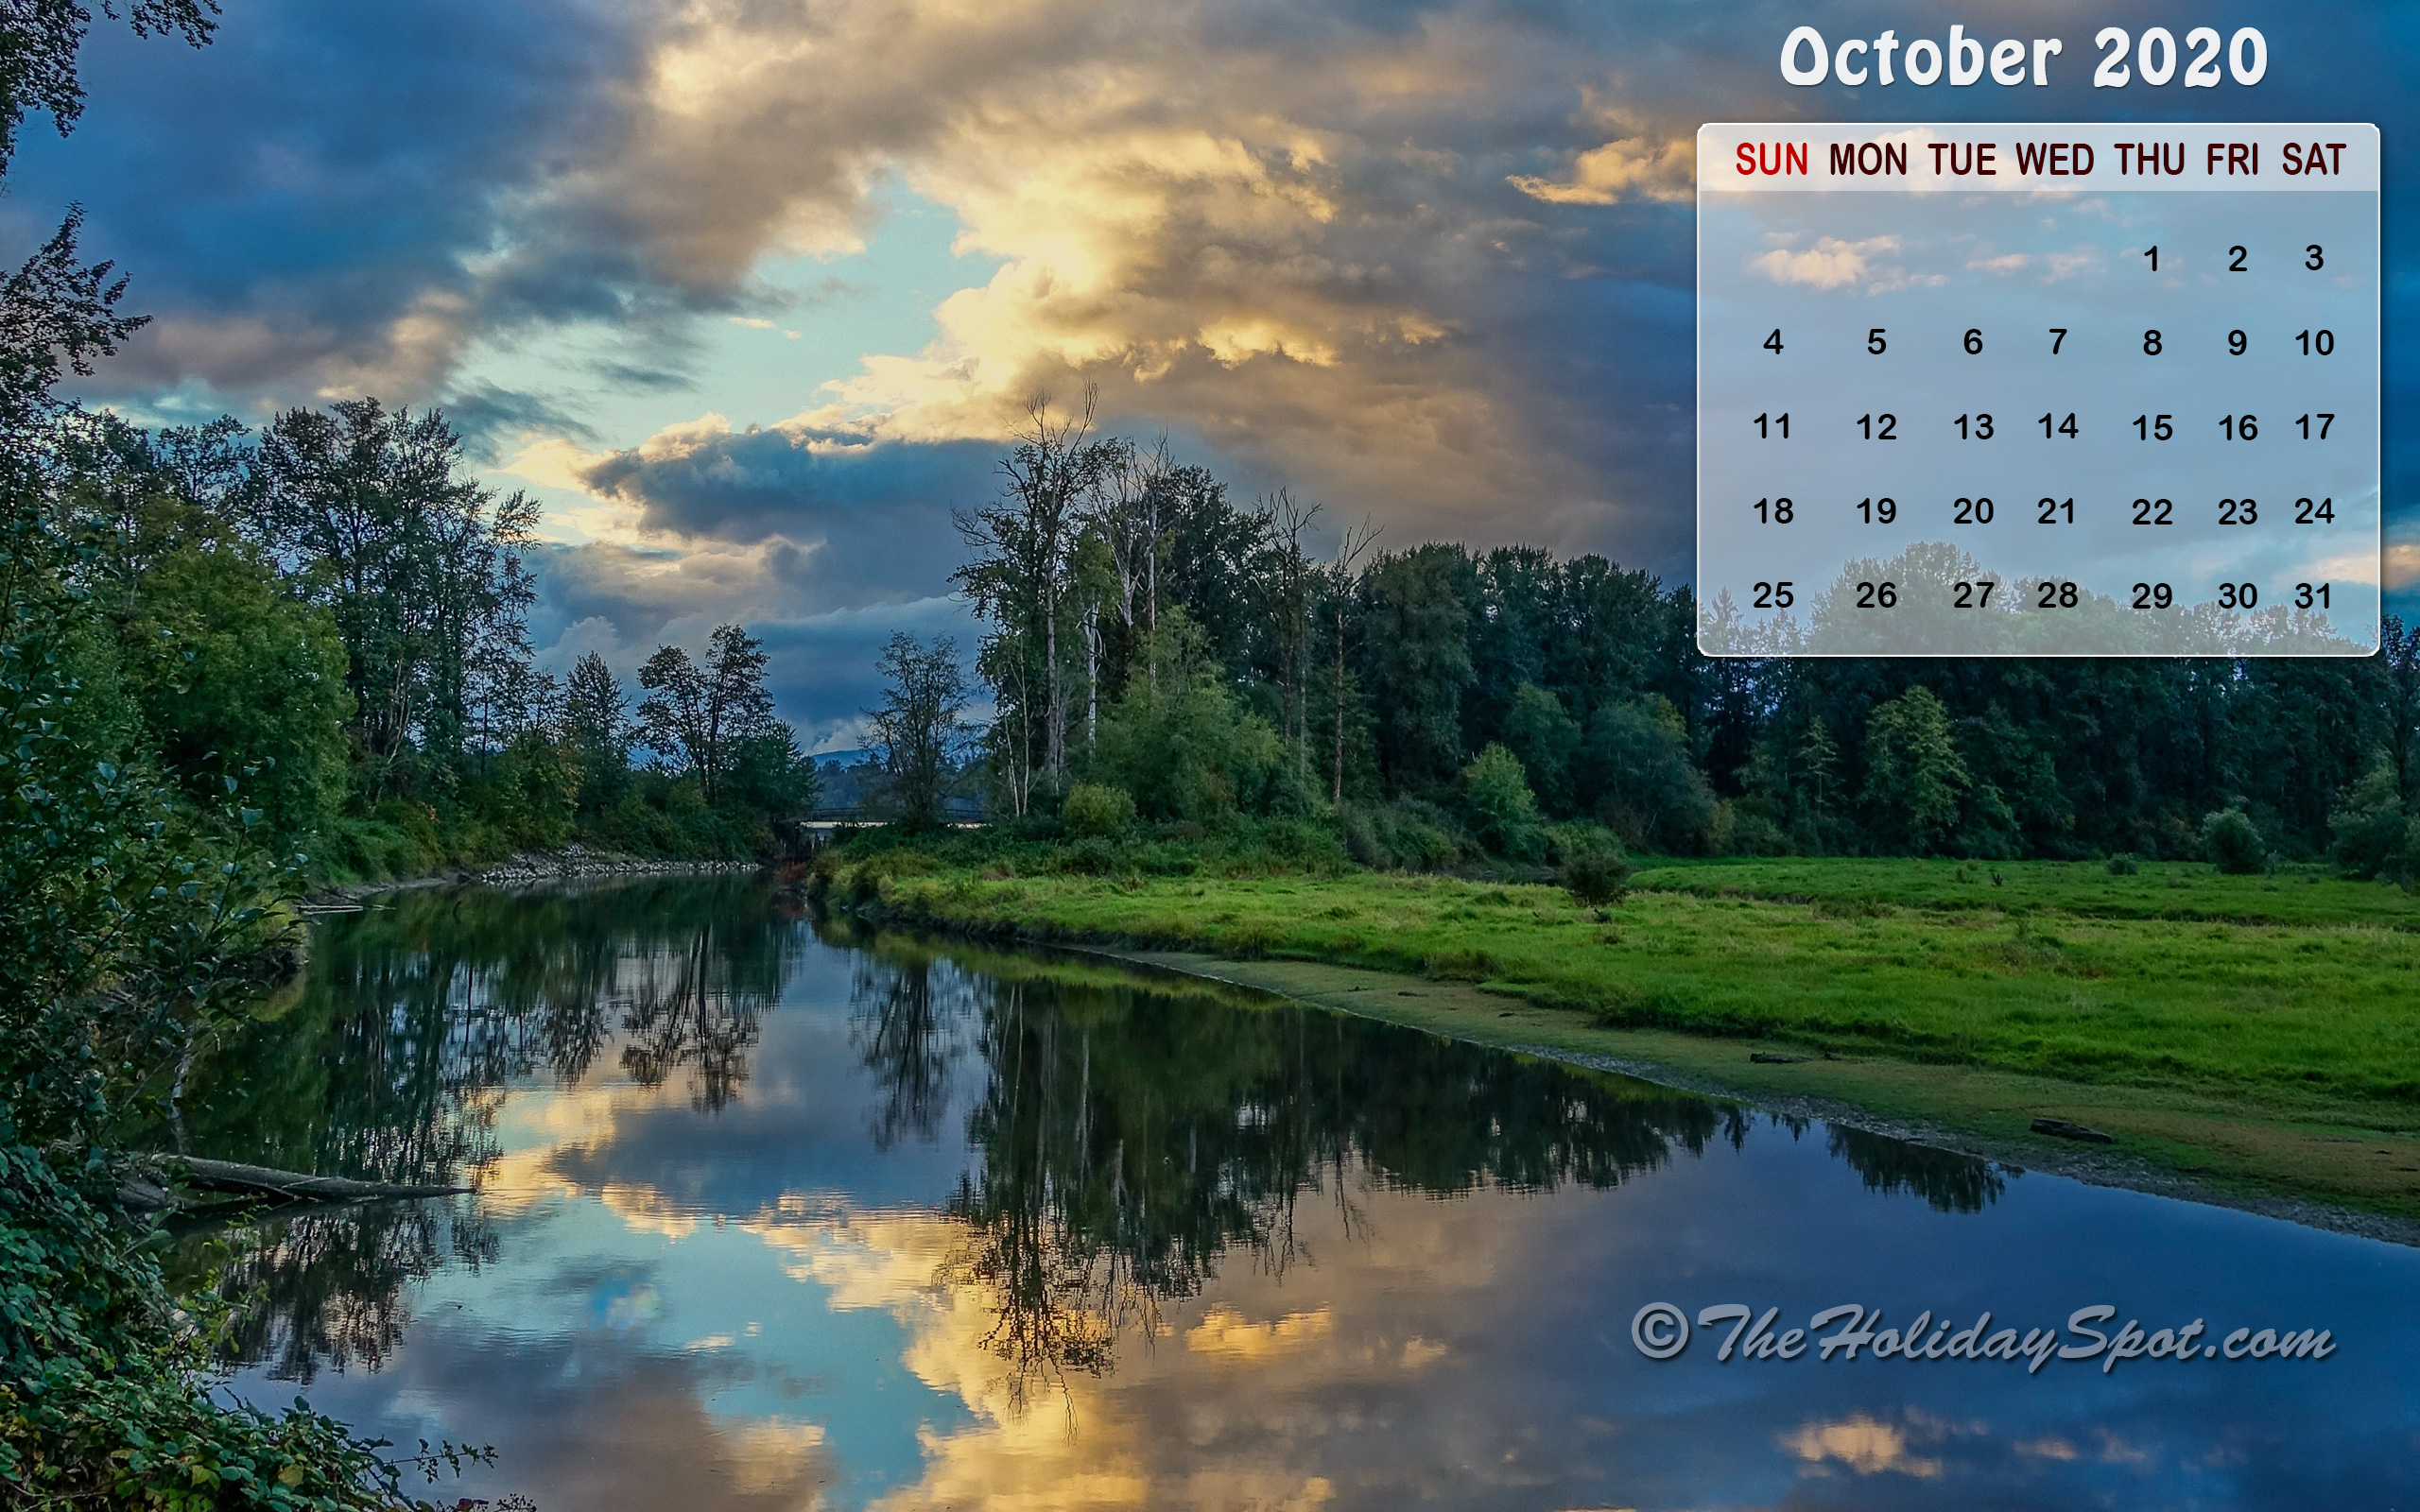 Calendar Wallpaper October 2020 Wallpapers From Theholidayspot